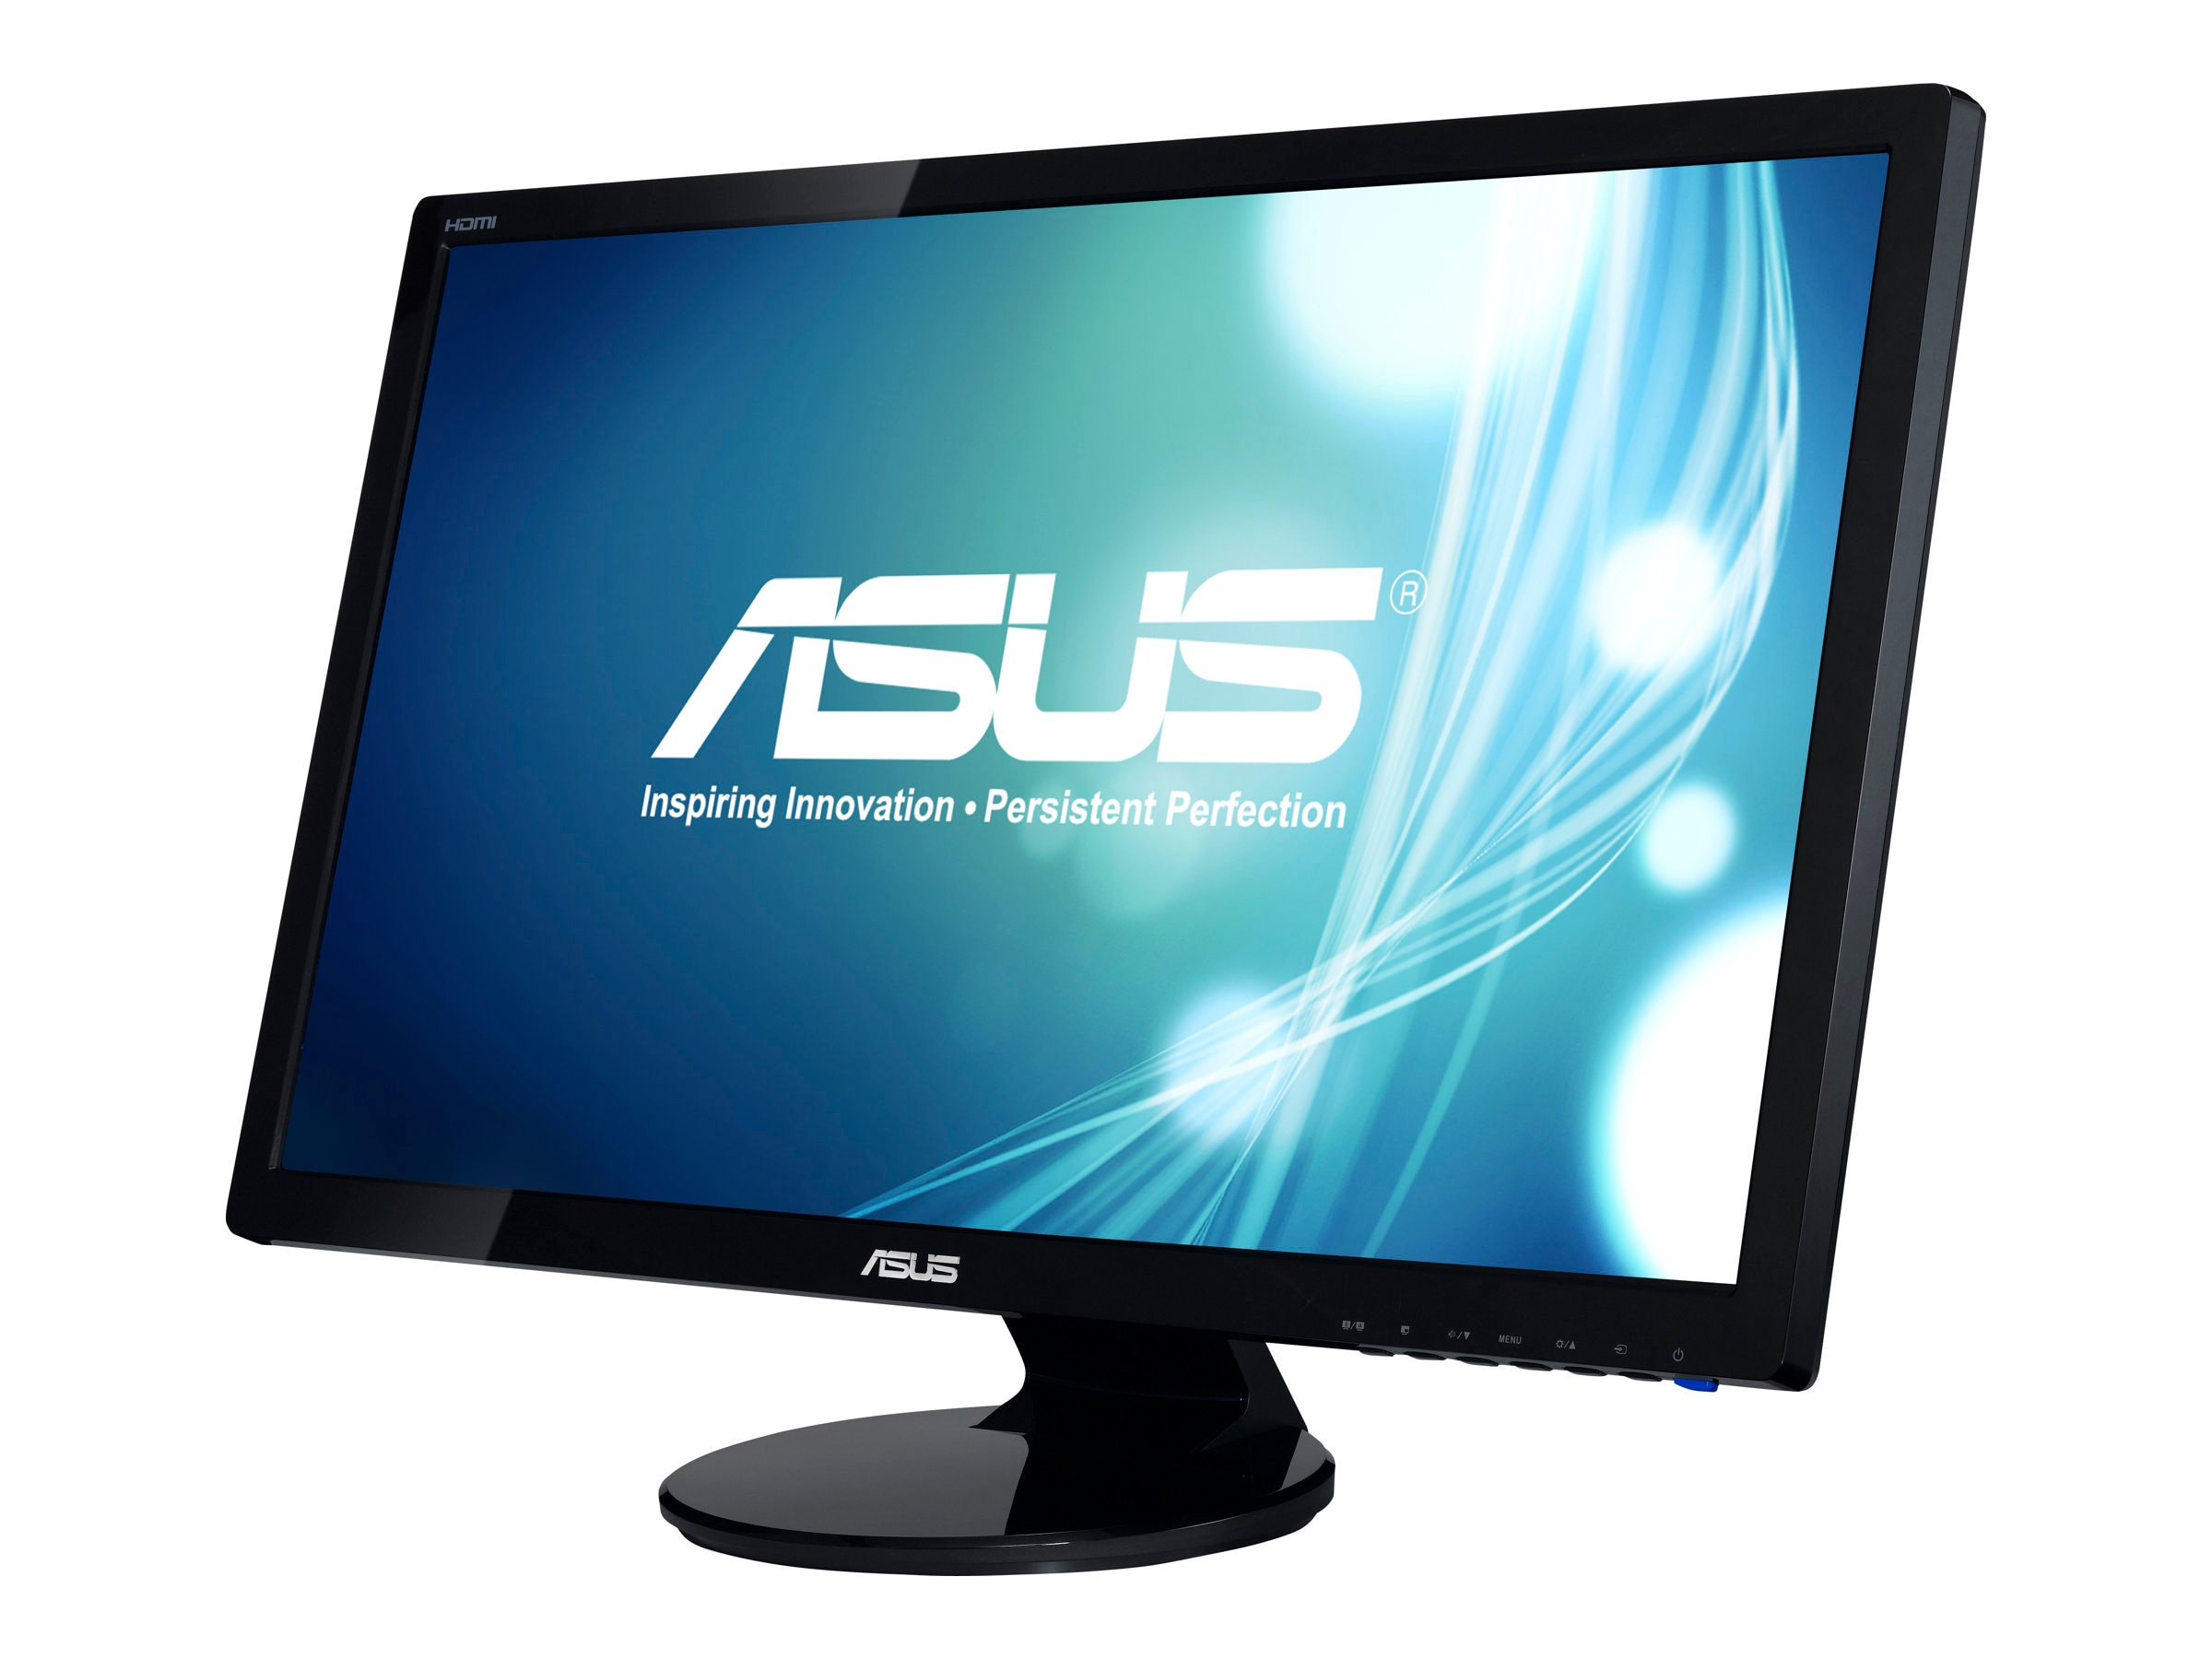 Asus 27 VE278Q Full HD LED-LCD Monitor with Speakers, Black